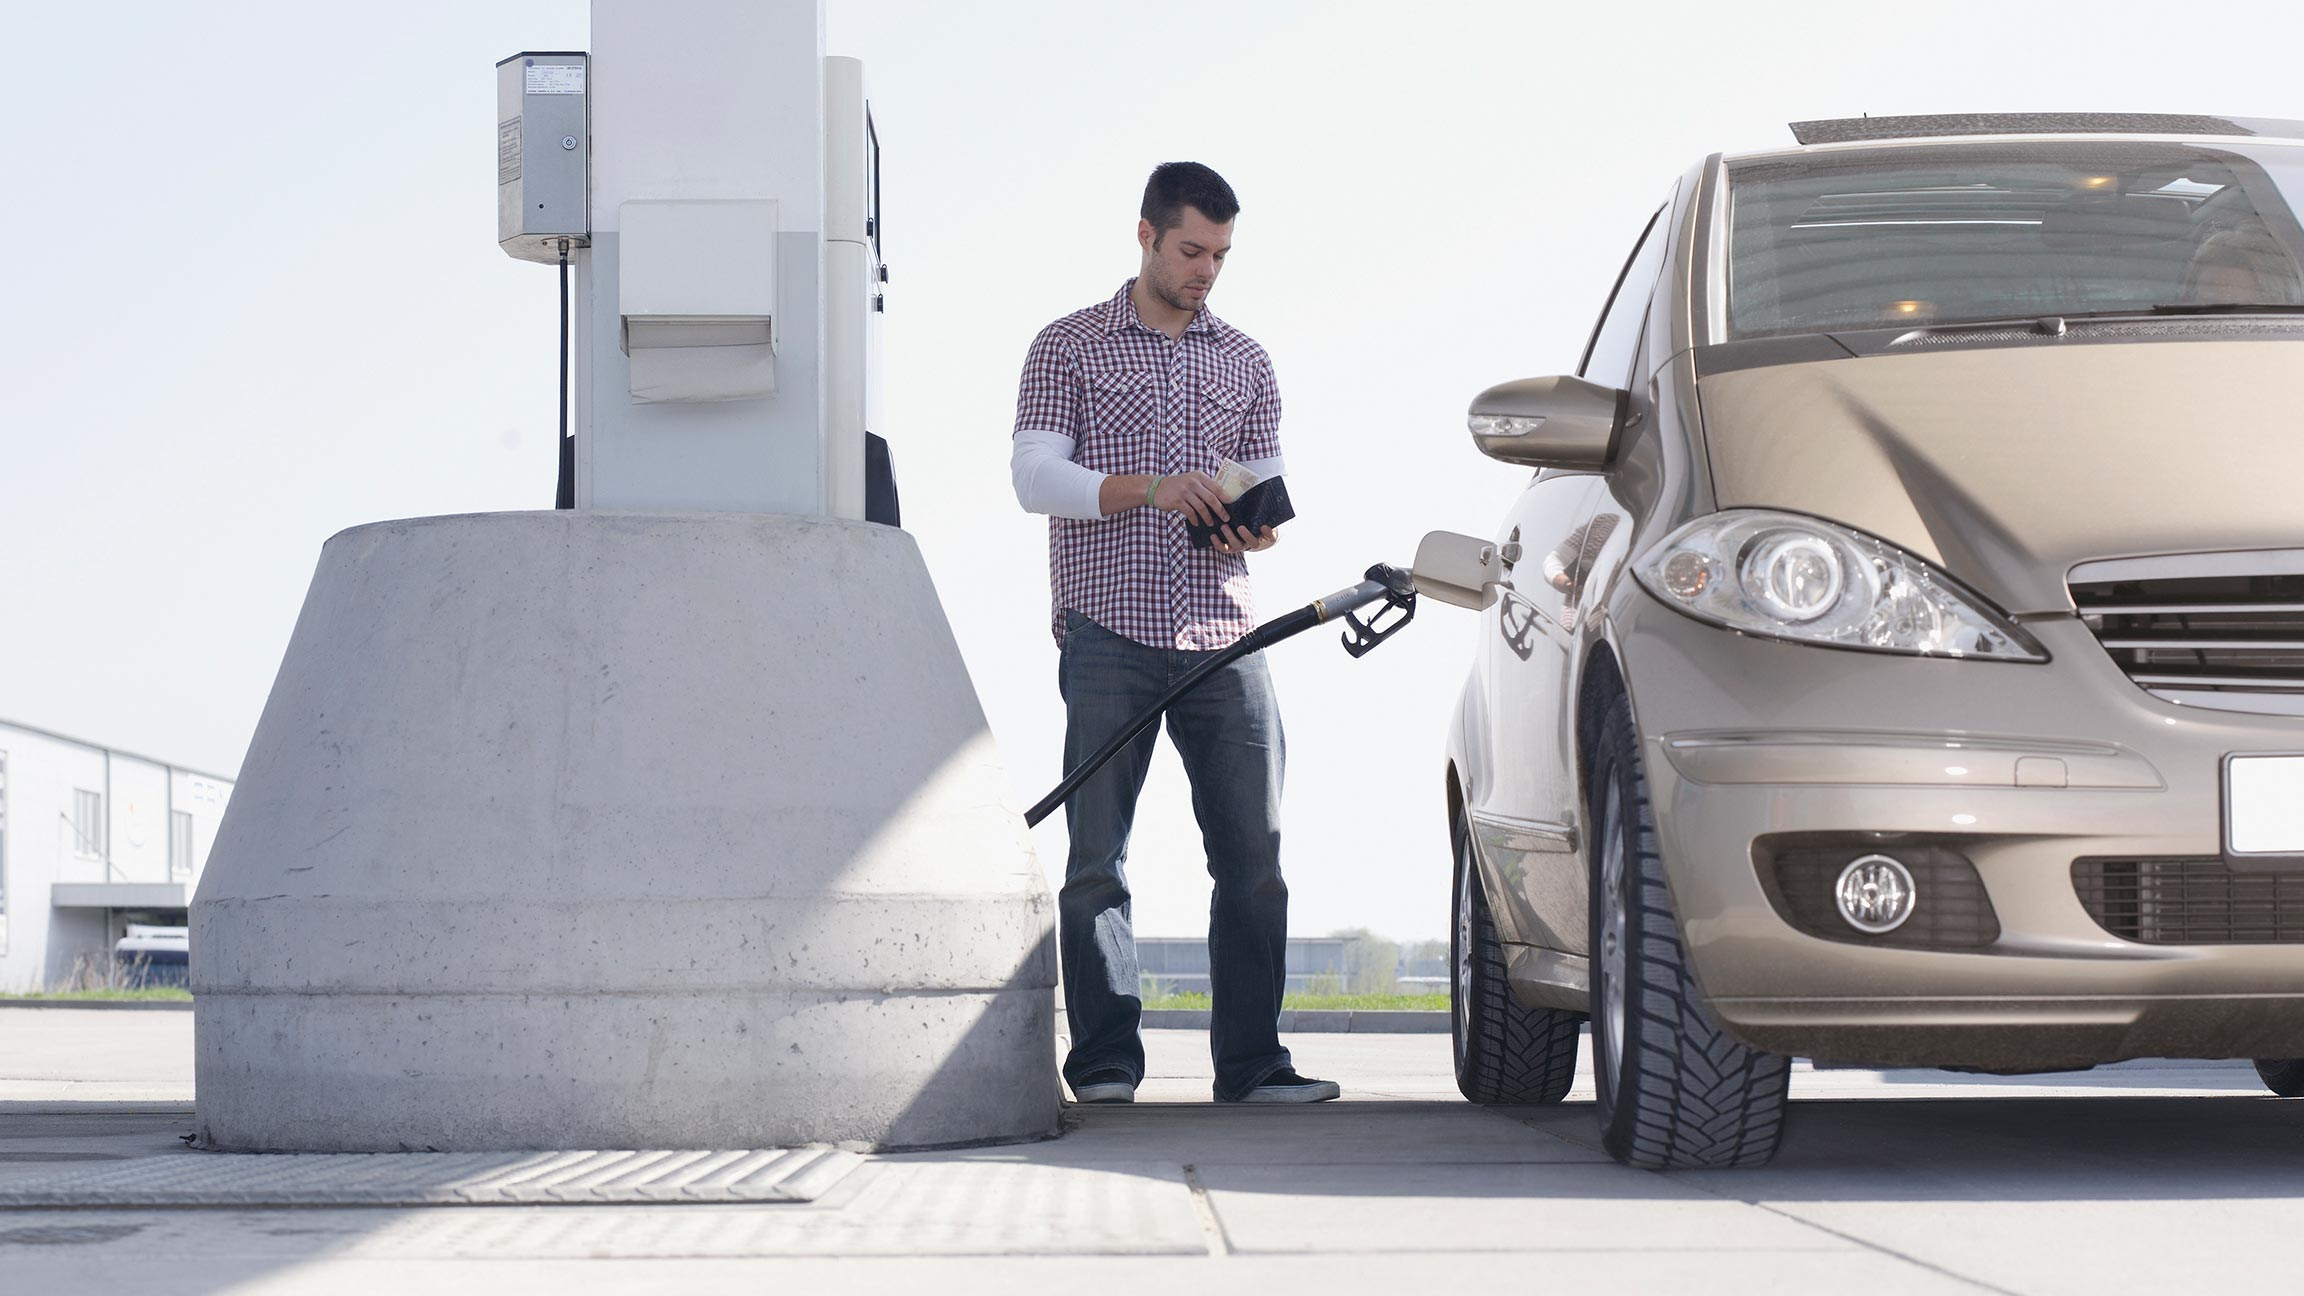 High petrol prices are changing consumer spending habits